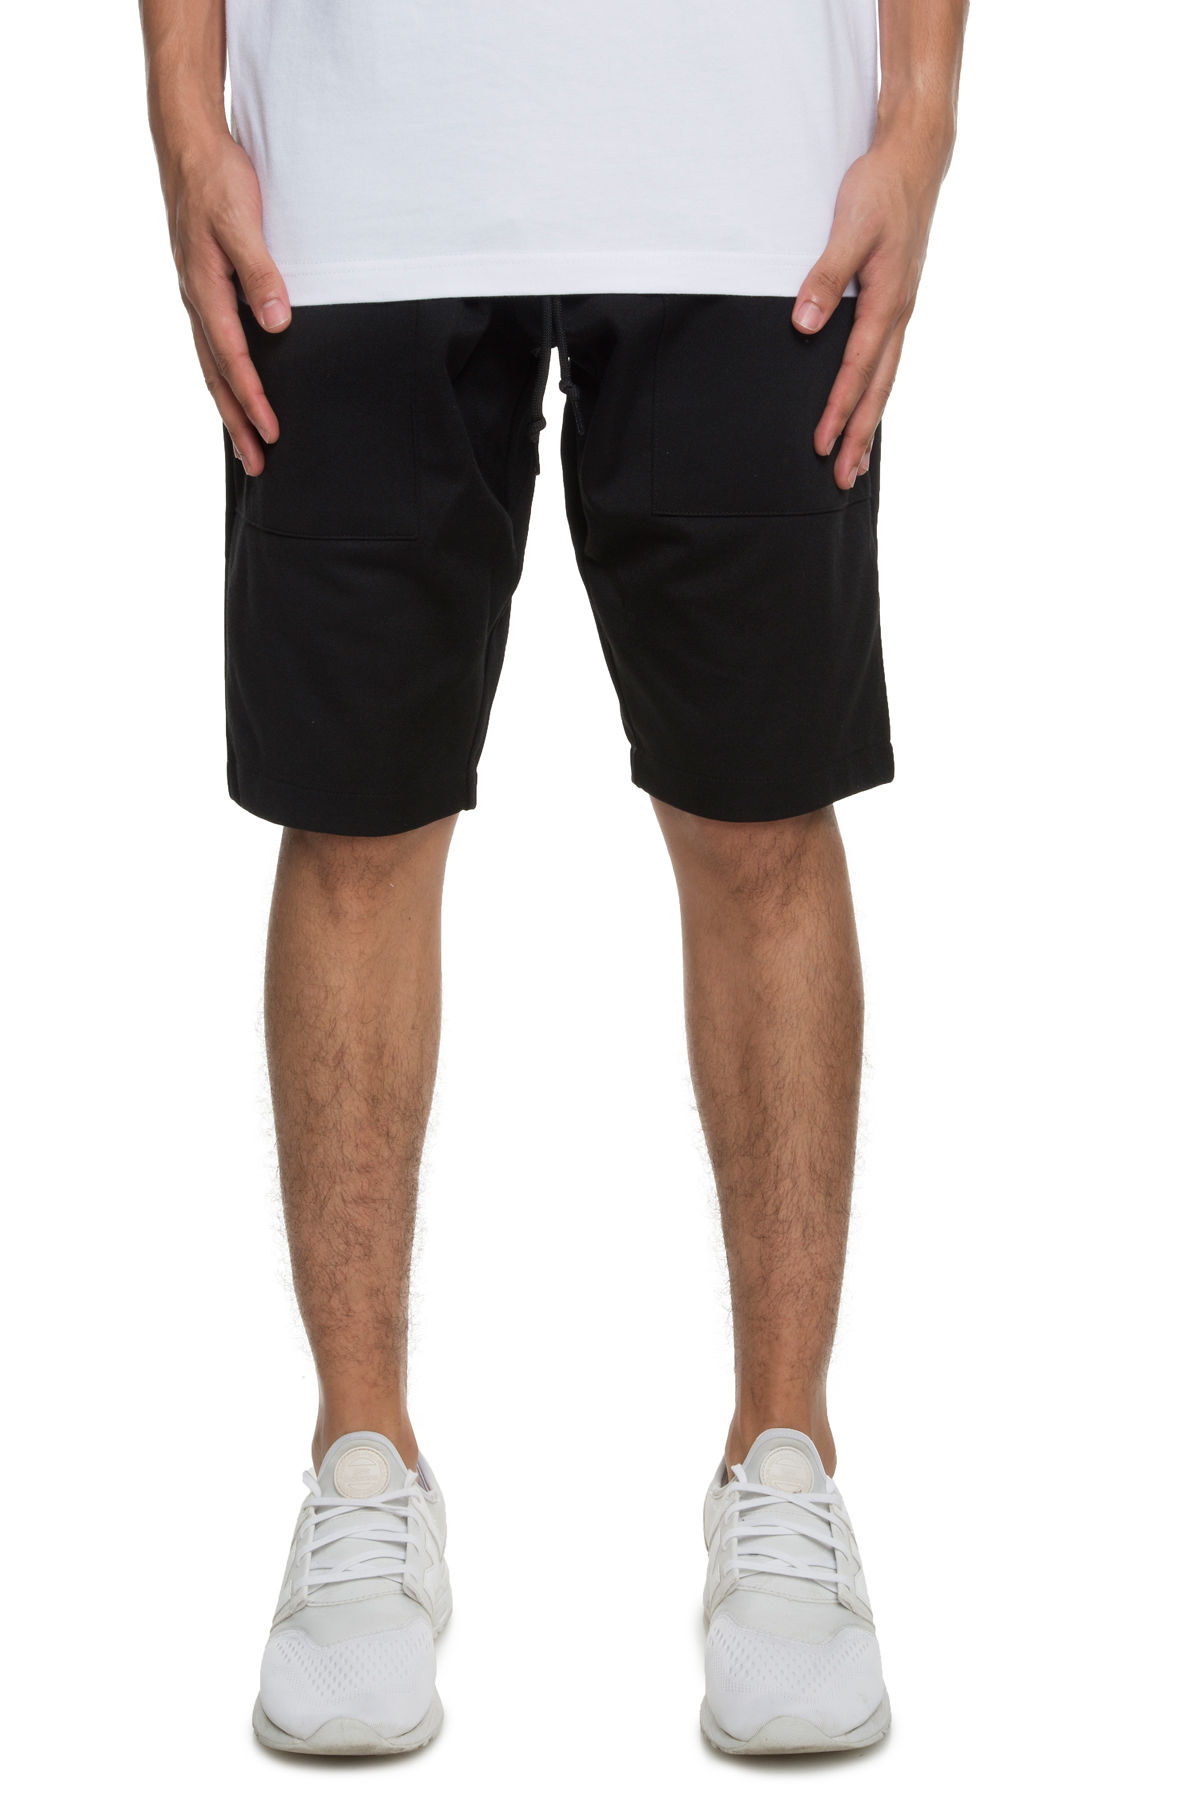 Image of The Gym Rat Shorts in Black